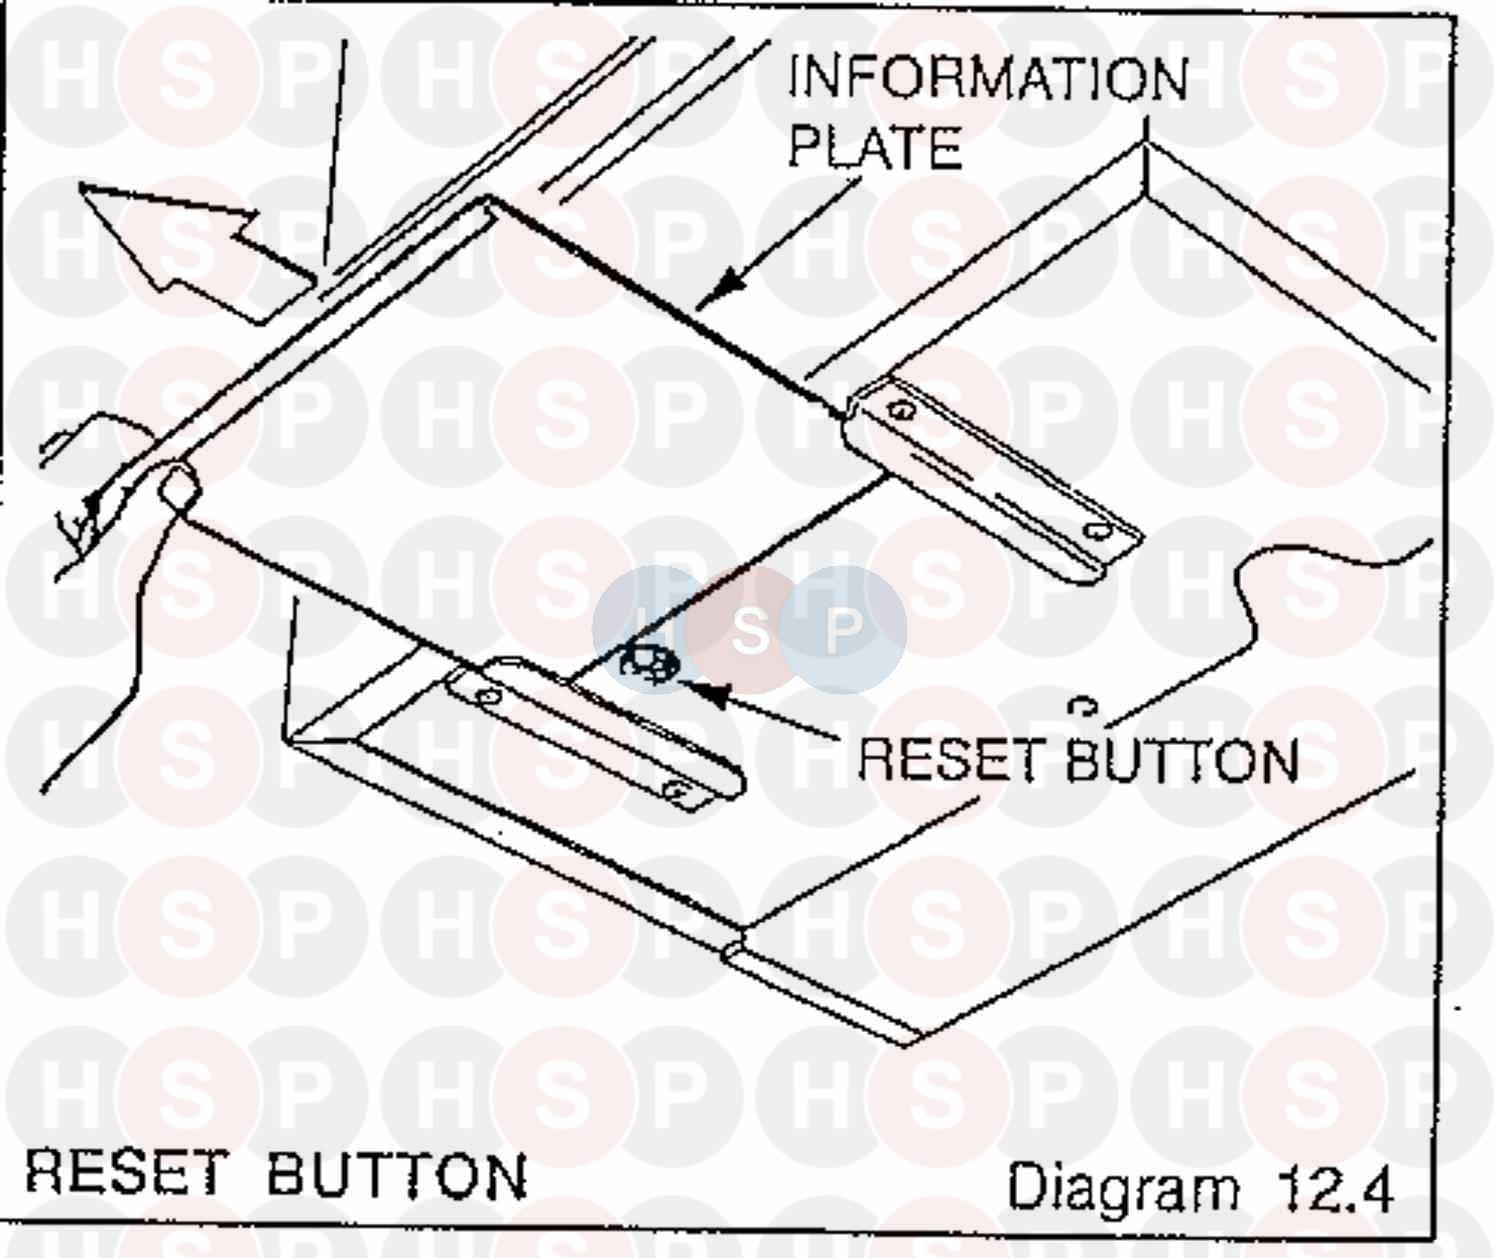 Saunier Duval SYSTEM 400.80 (Reset Button) Diagram